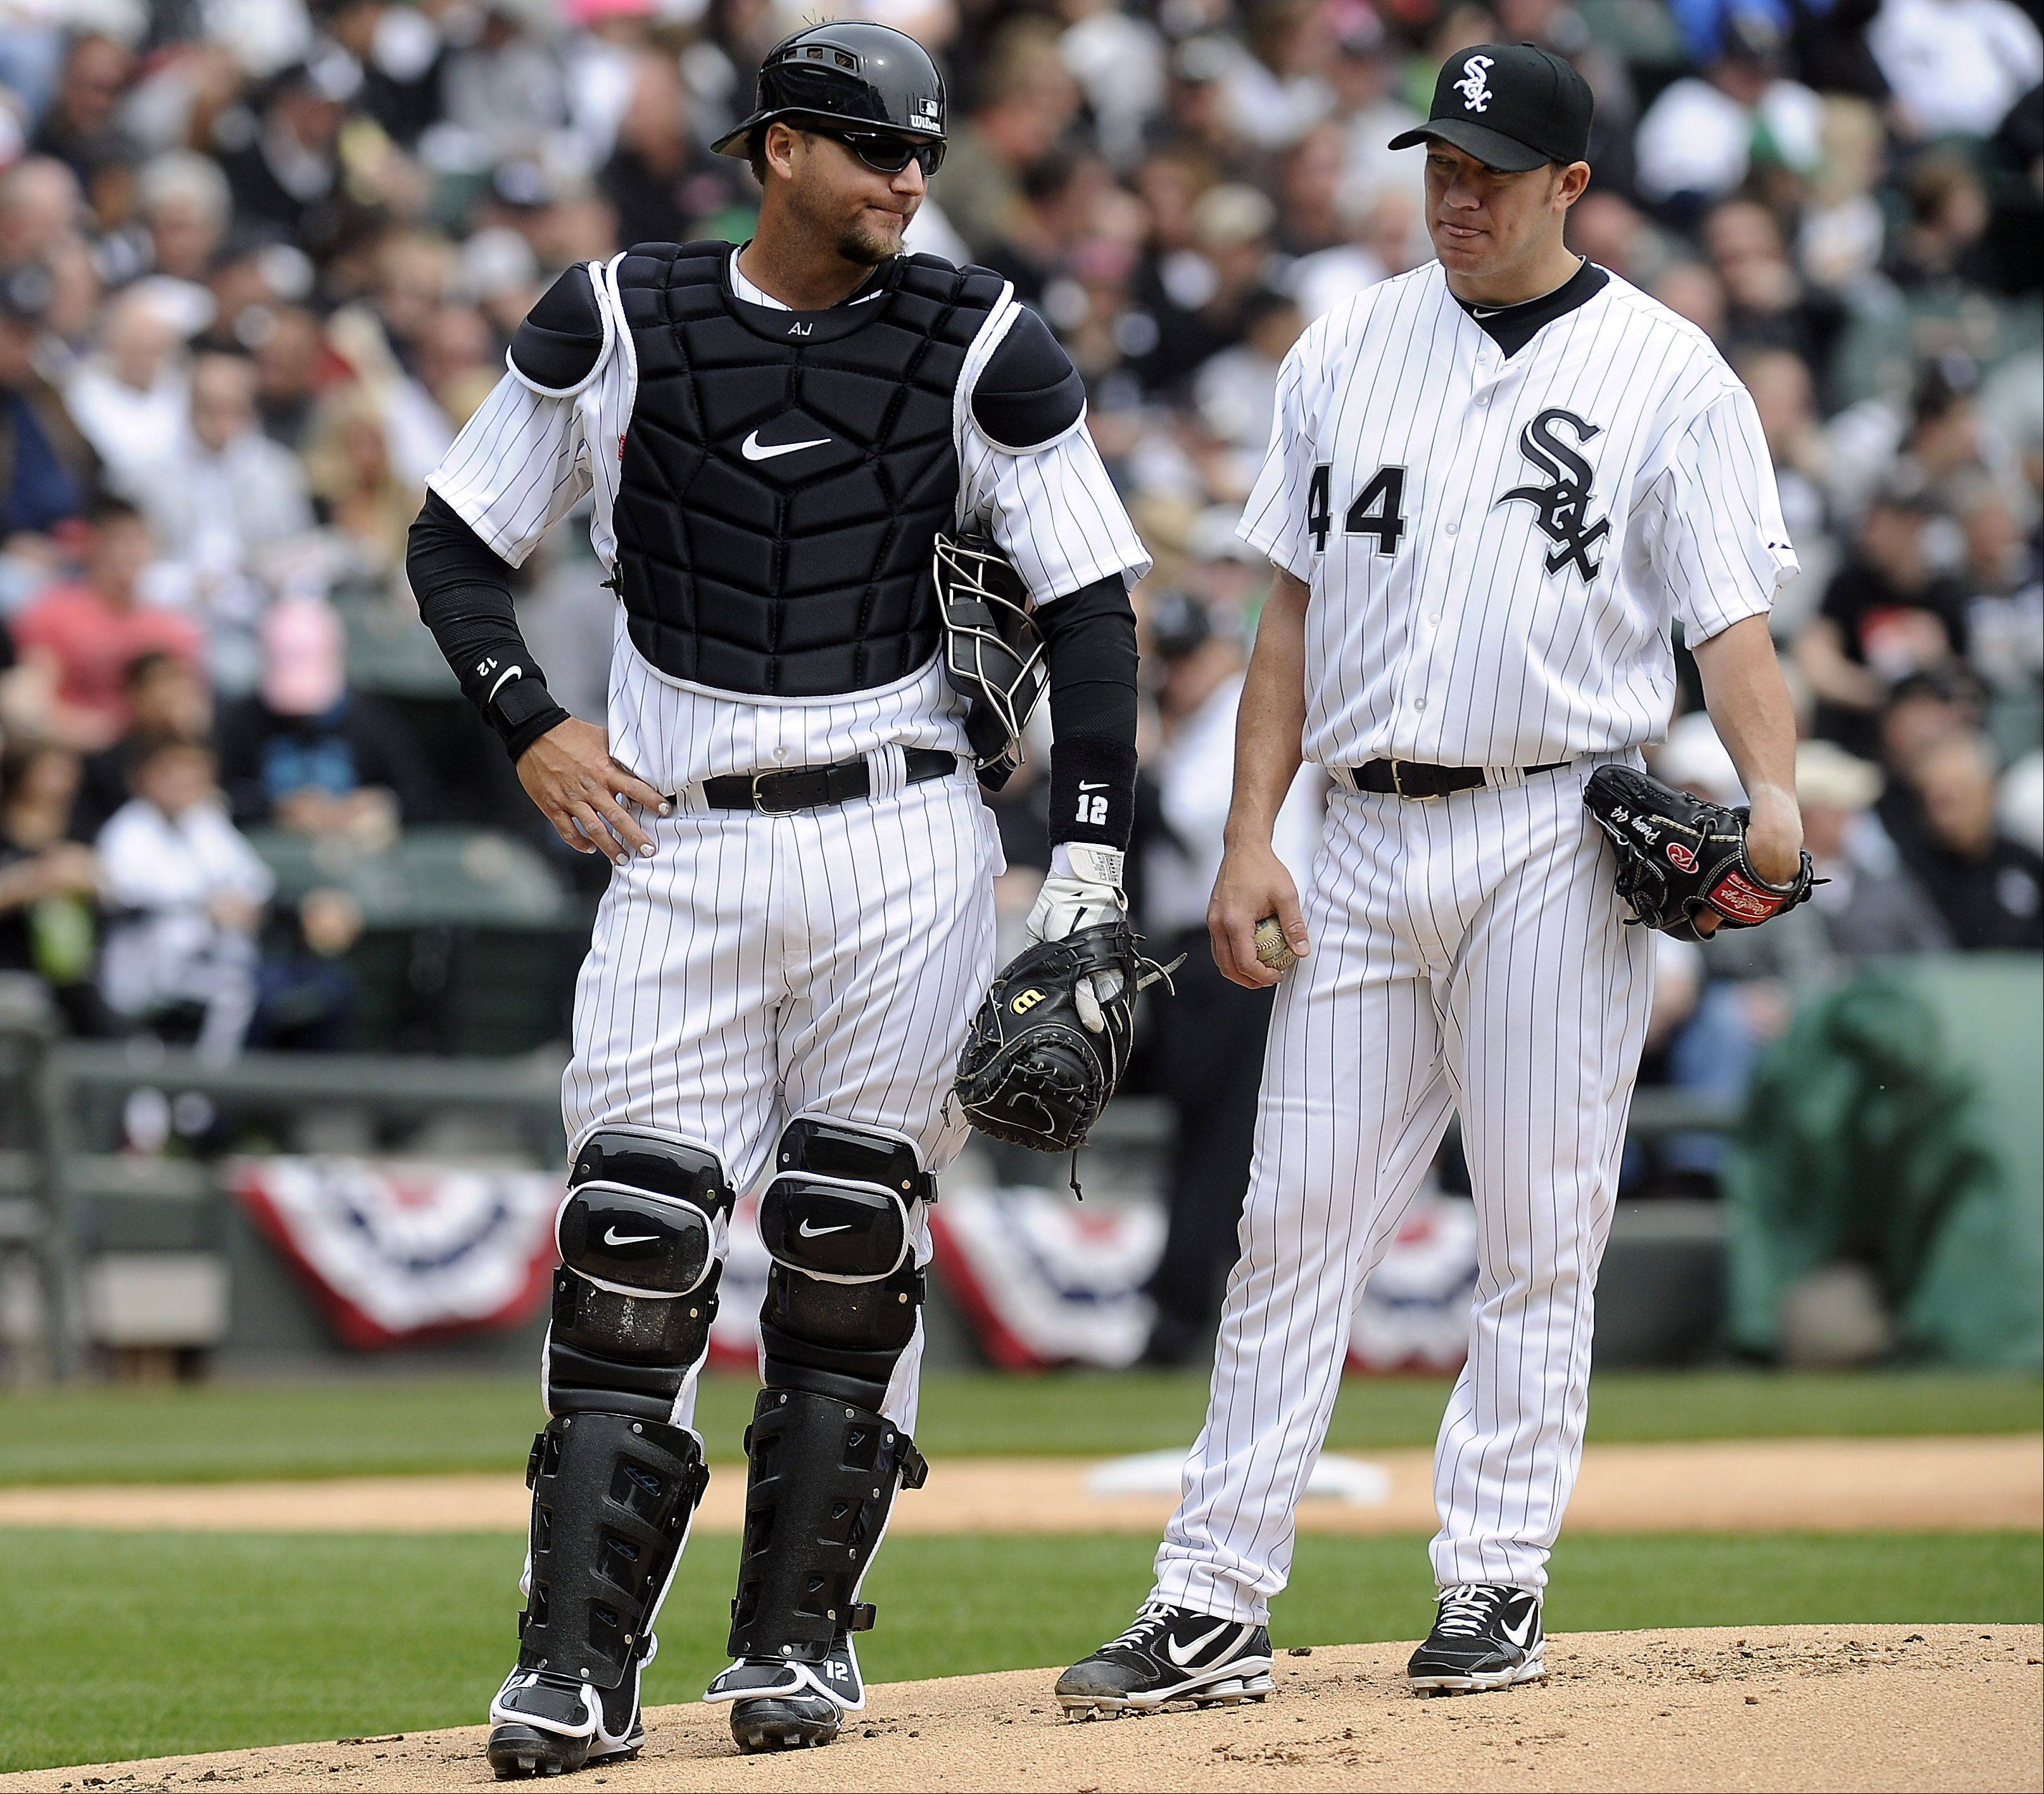 White Sox players A.J. Pierzynski and pitcher Jake Peavy.